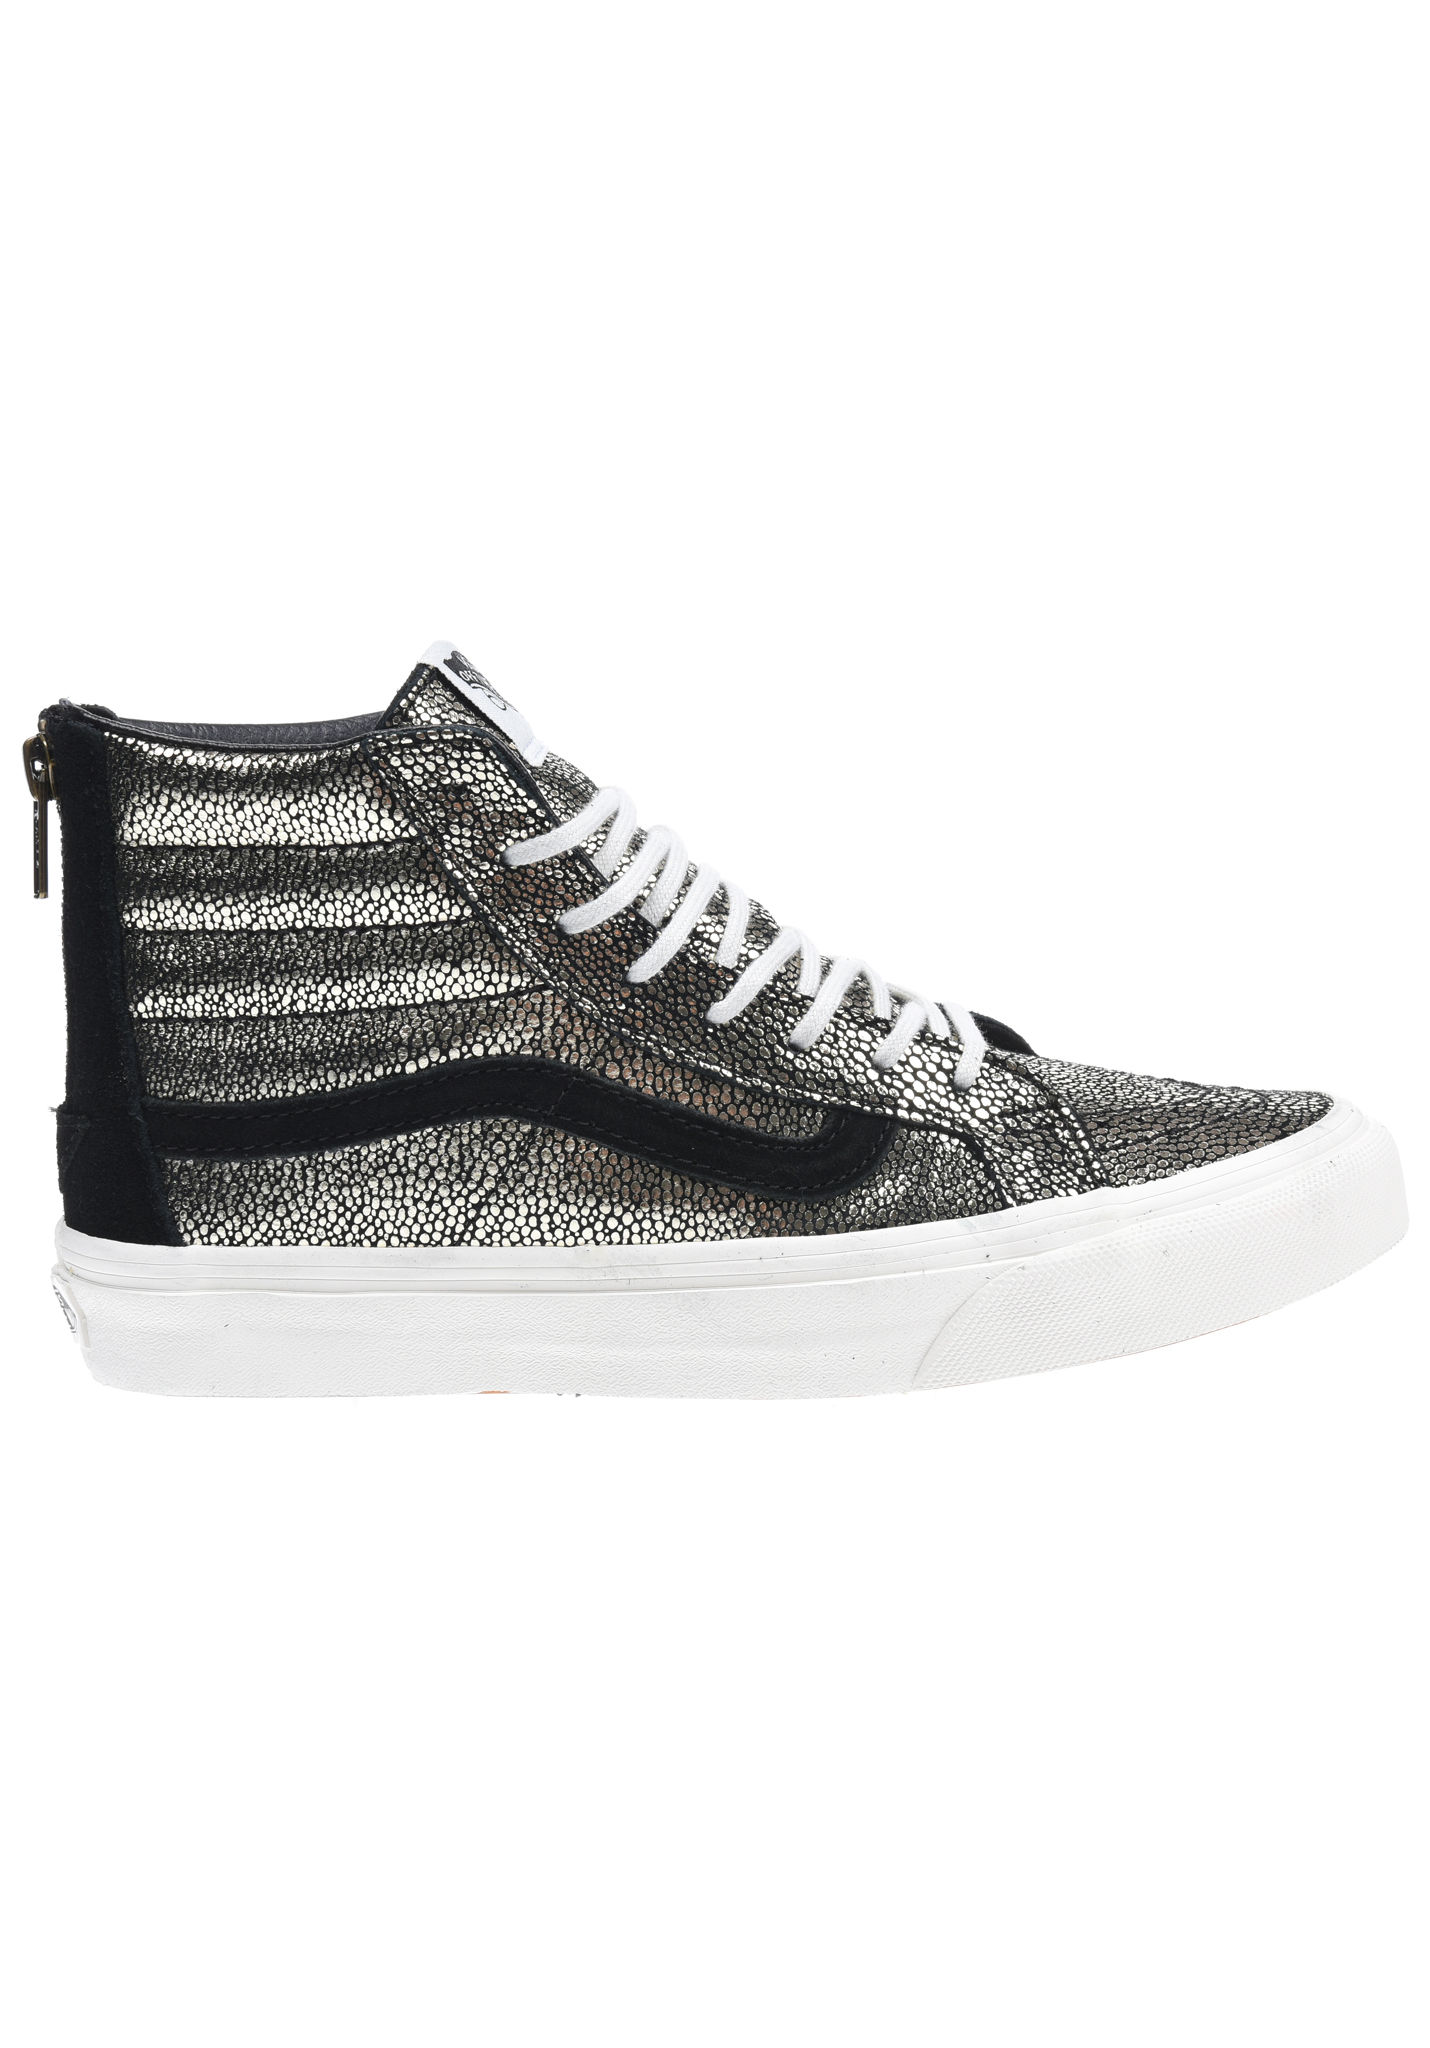 Zip Femme Sk8 Vans Or Planet Sports Hi Pour Baskets Slim tT41CqwH